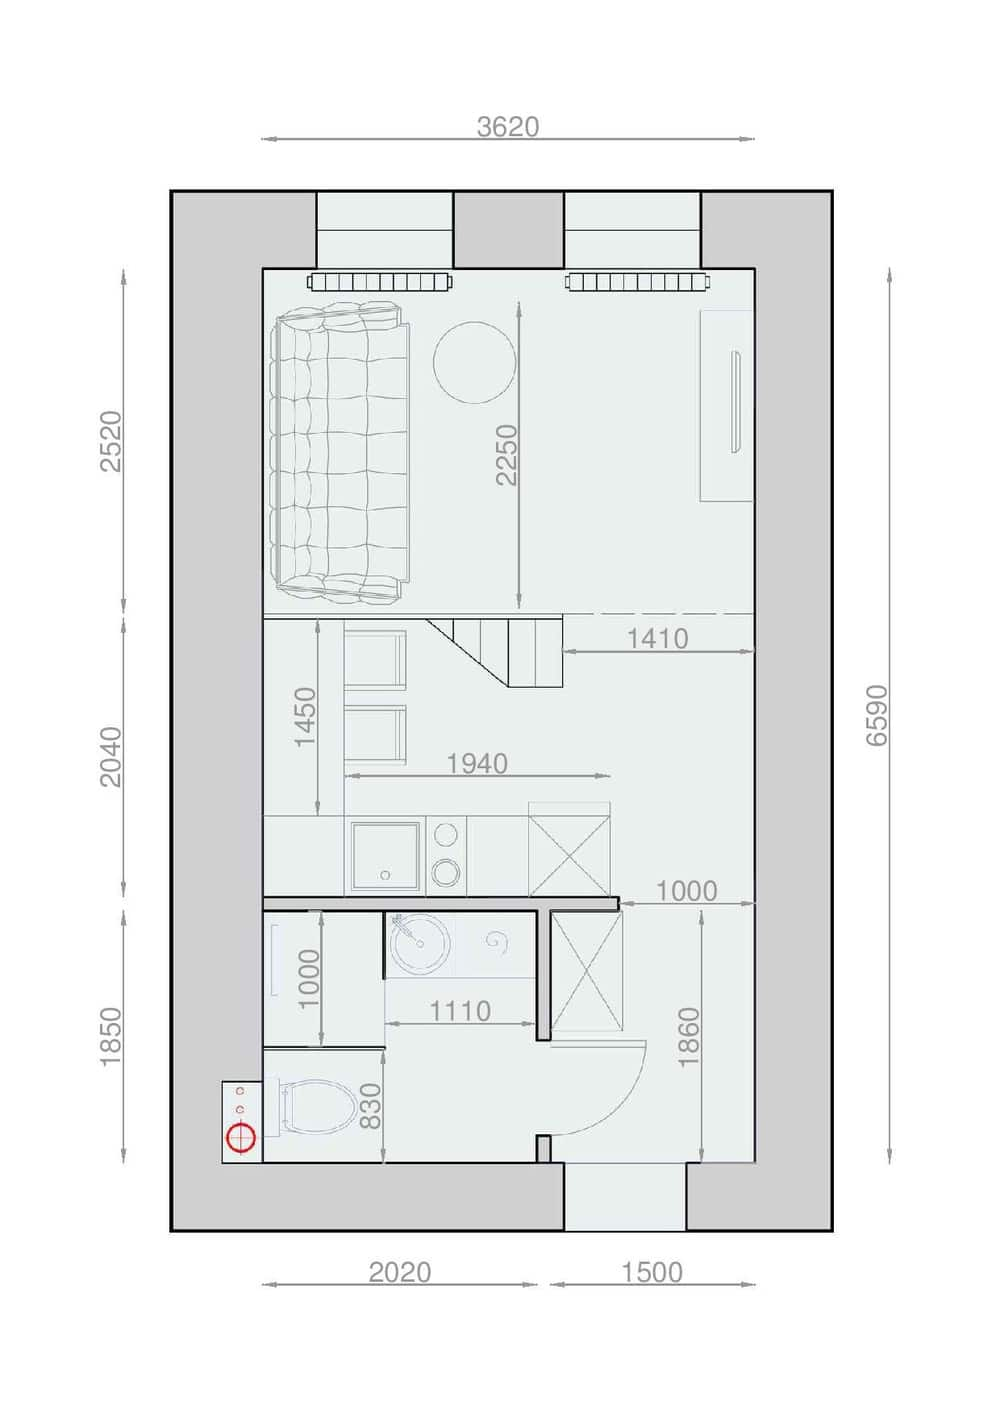 Plans pour am nager et d corer un appartement de 30m2 for Appartement design plan